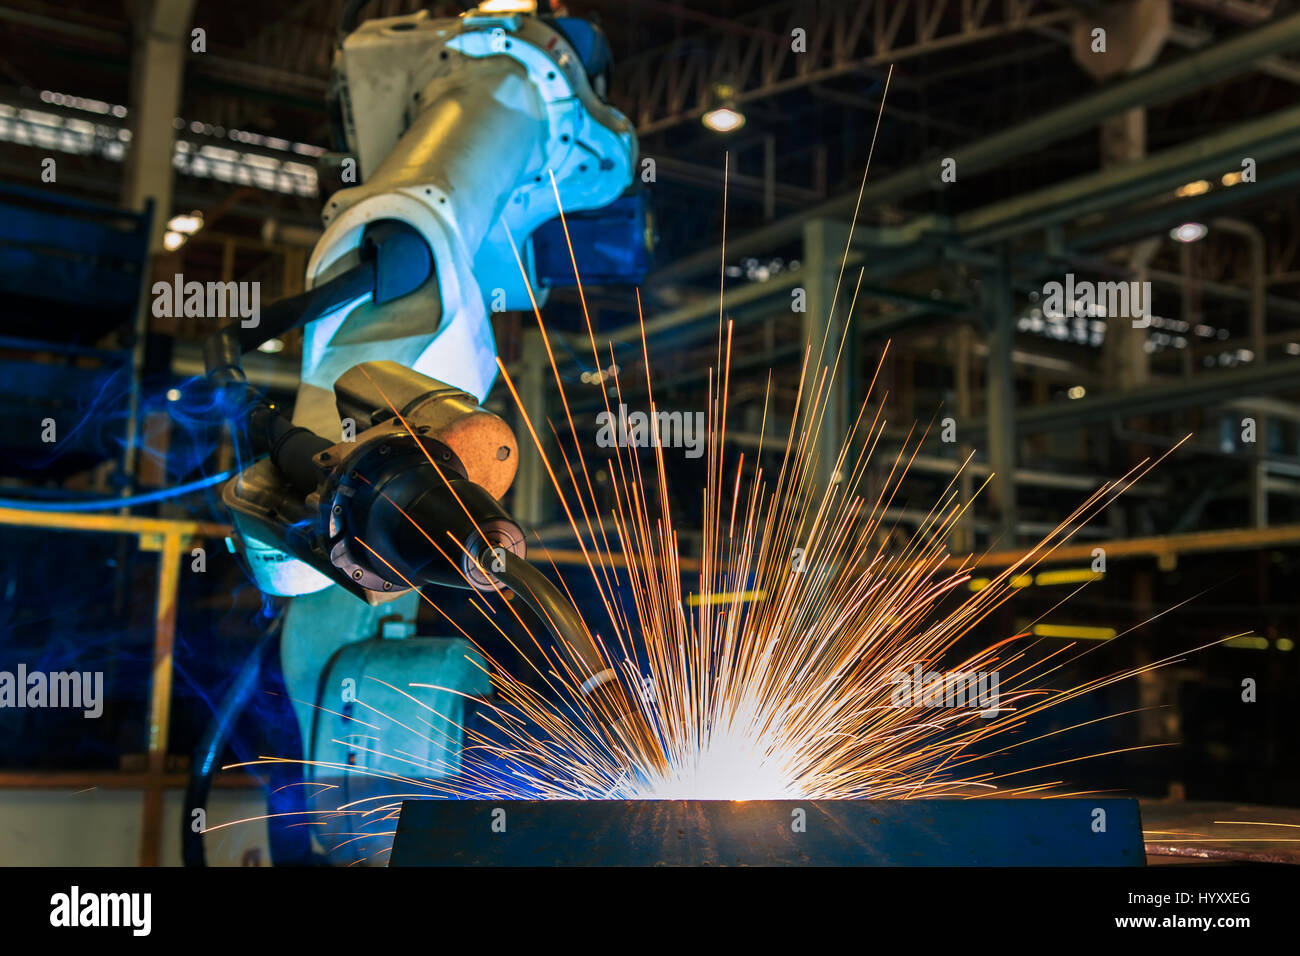 Test run robot welding - Stock Image